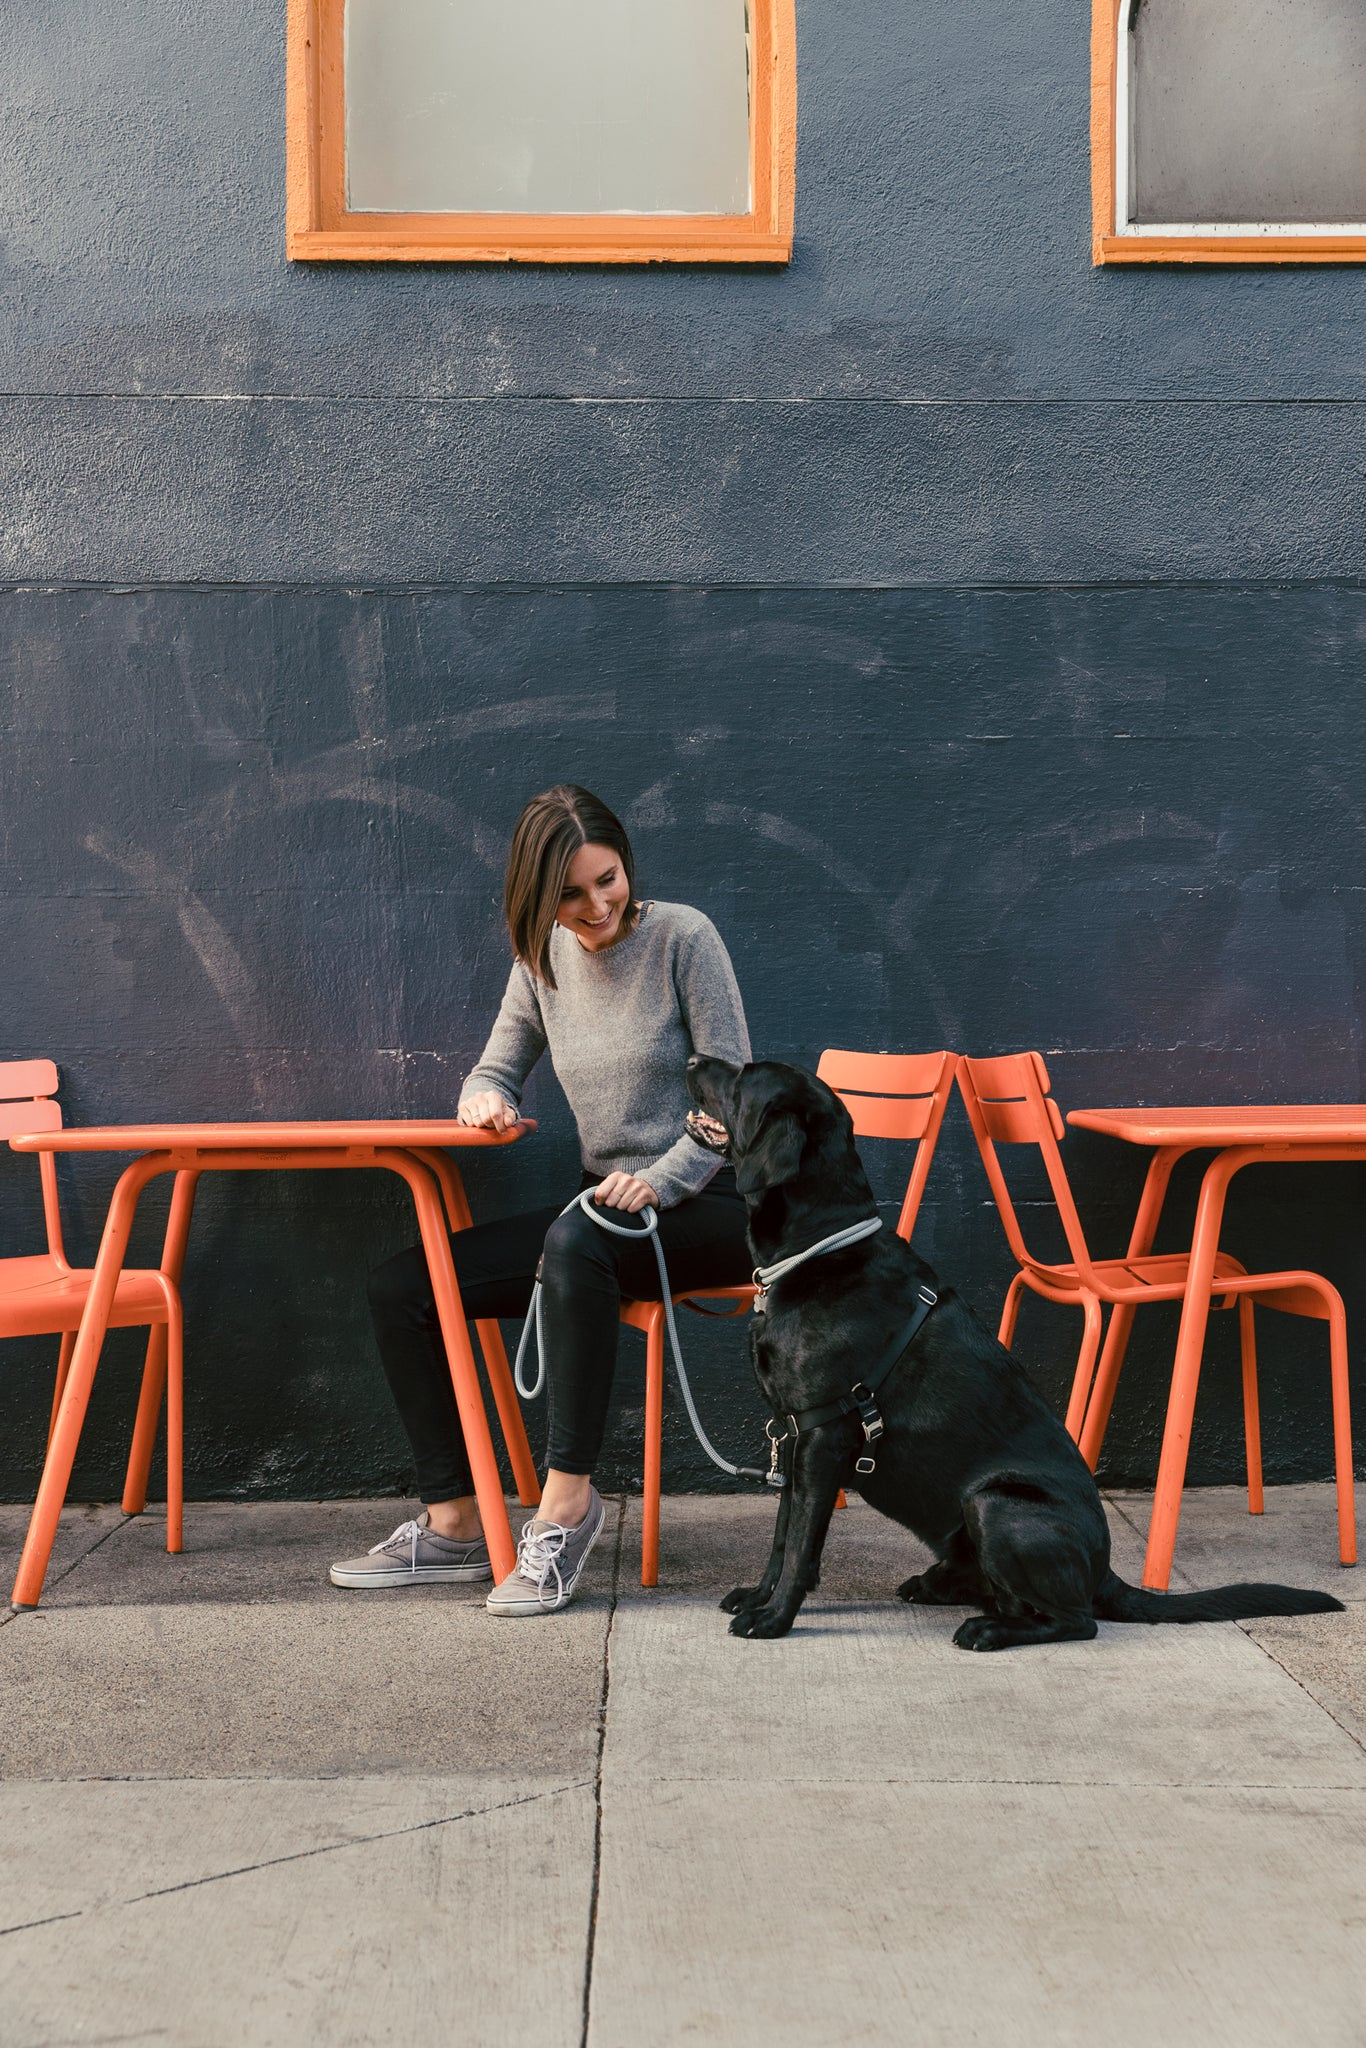 Woman sits outside on city street with dog - Atlas Pet Company Top Five Towns for Dog Lovers